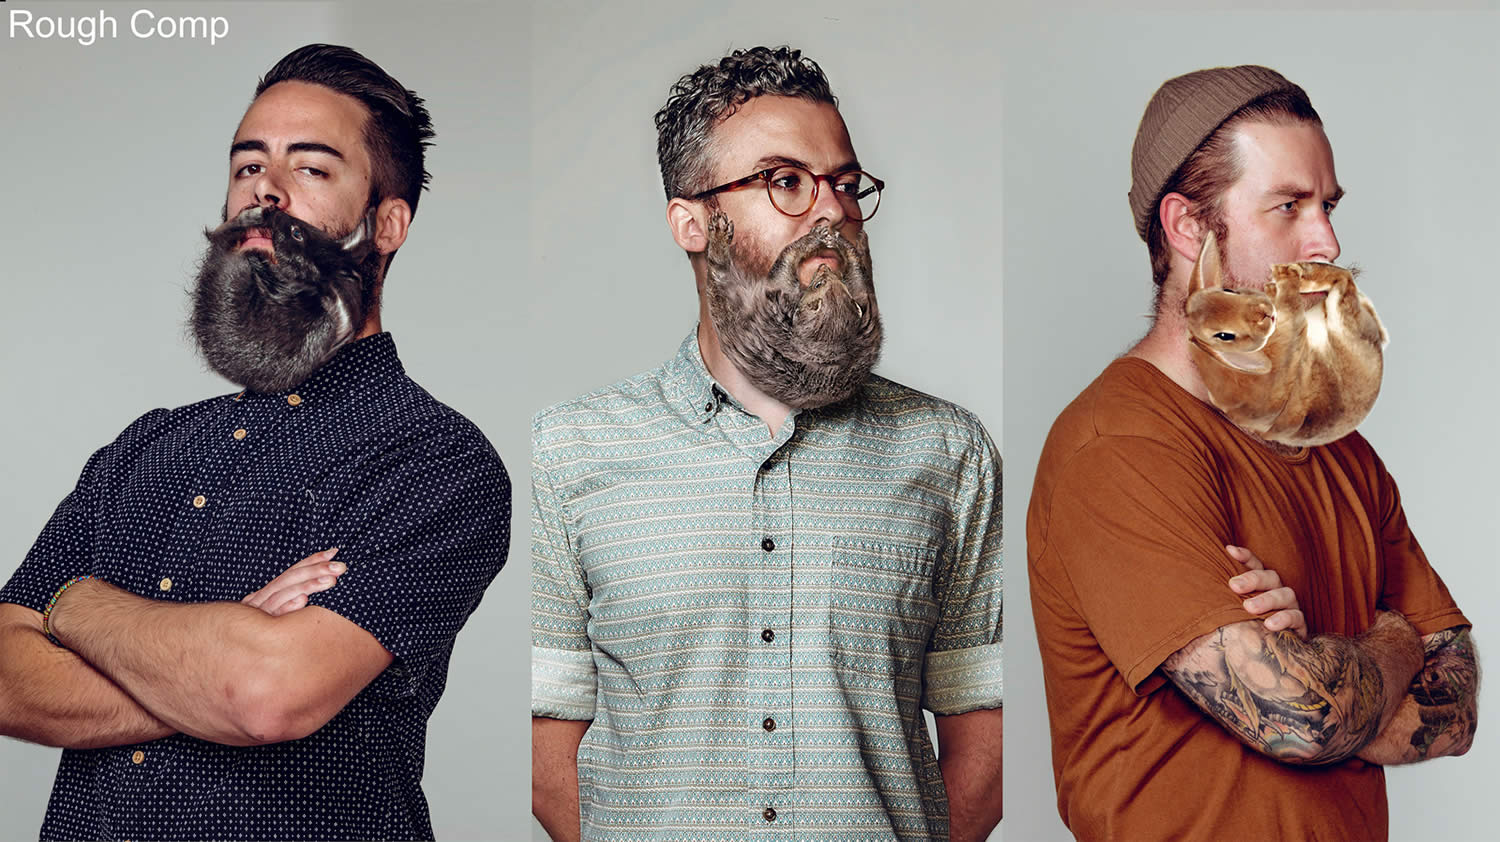 rough comp. three men with beards. Electric Art / Schick NZ. By Sharpe + Associates Inc.